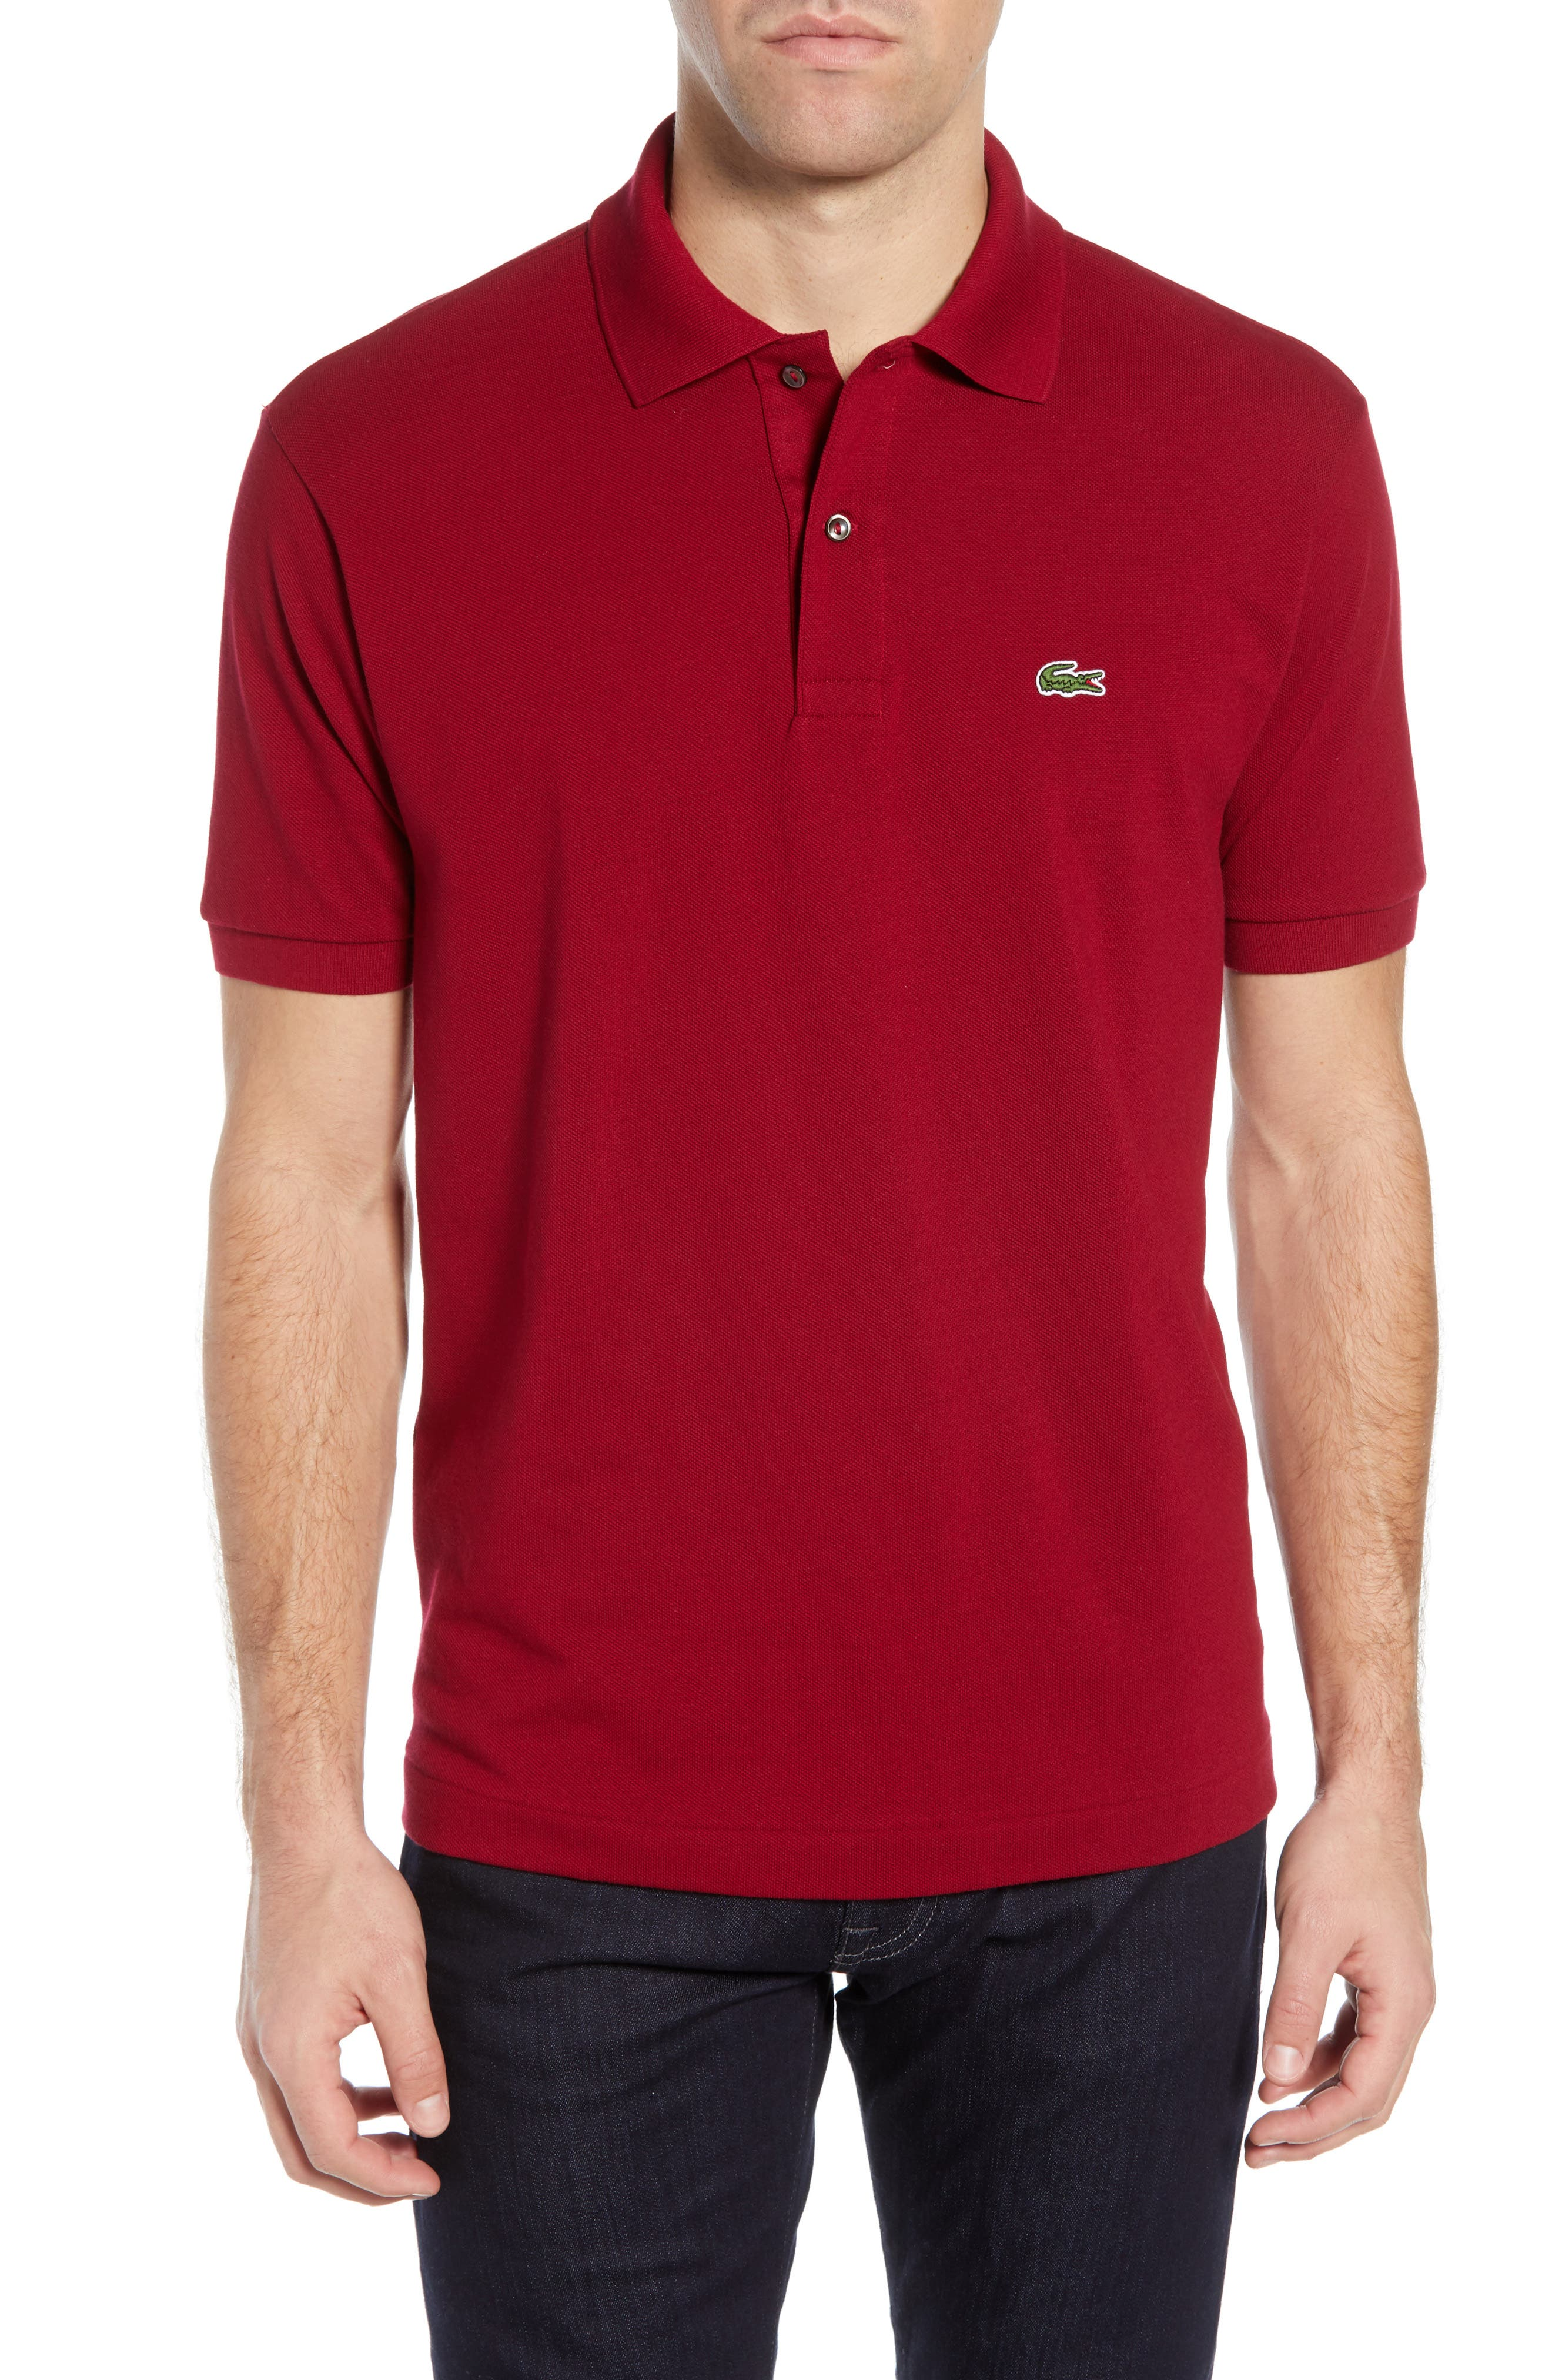 5b599e102222b1 ... Short Sleeve Classic Pique Polo Style  L1212-51 UPC 610836204093  product image for Men s Lacoste  L1212  Pique Polo